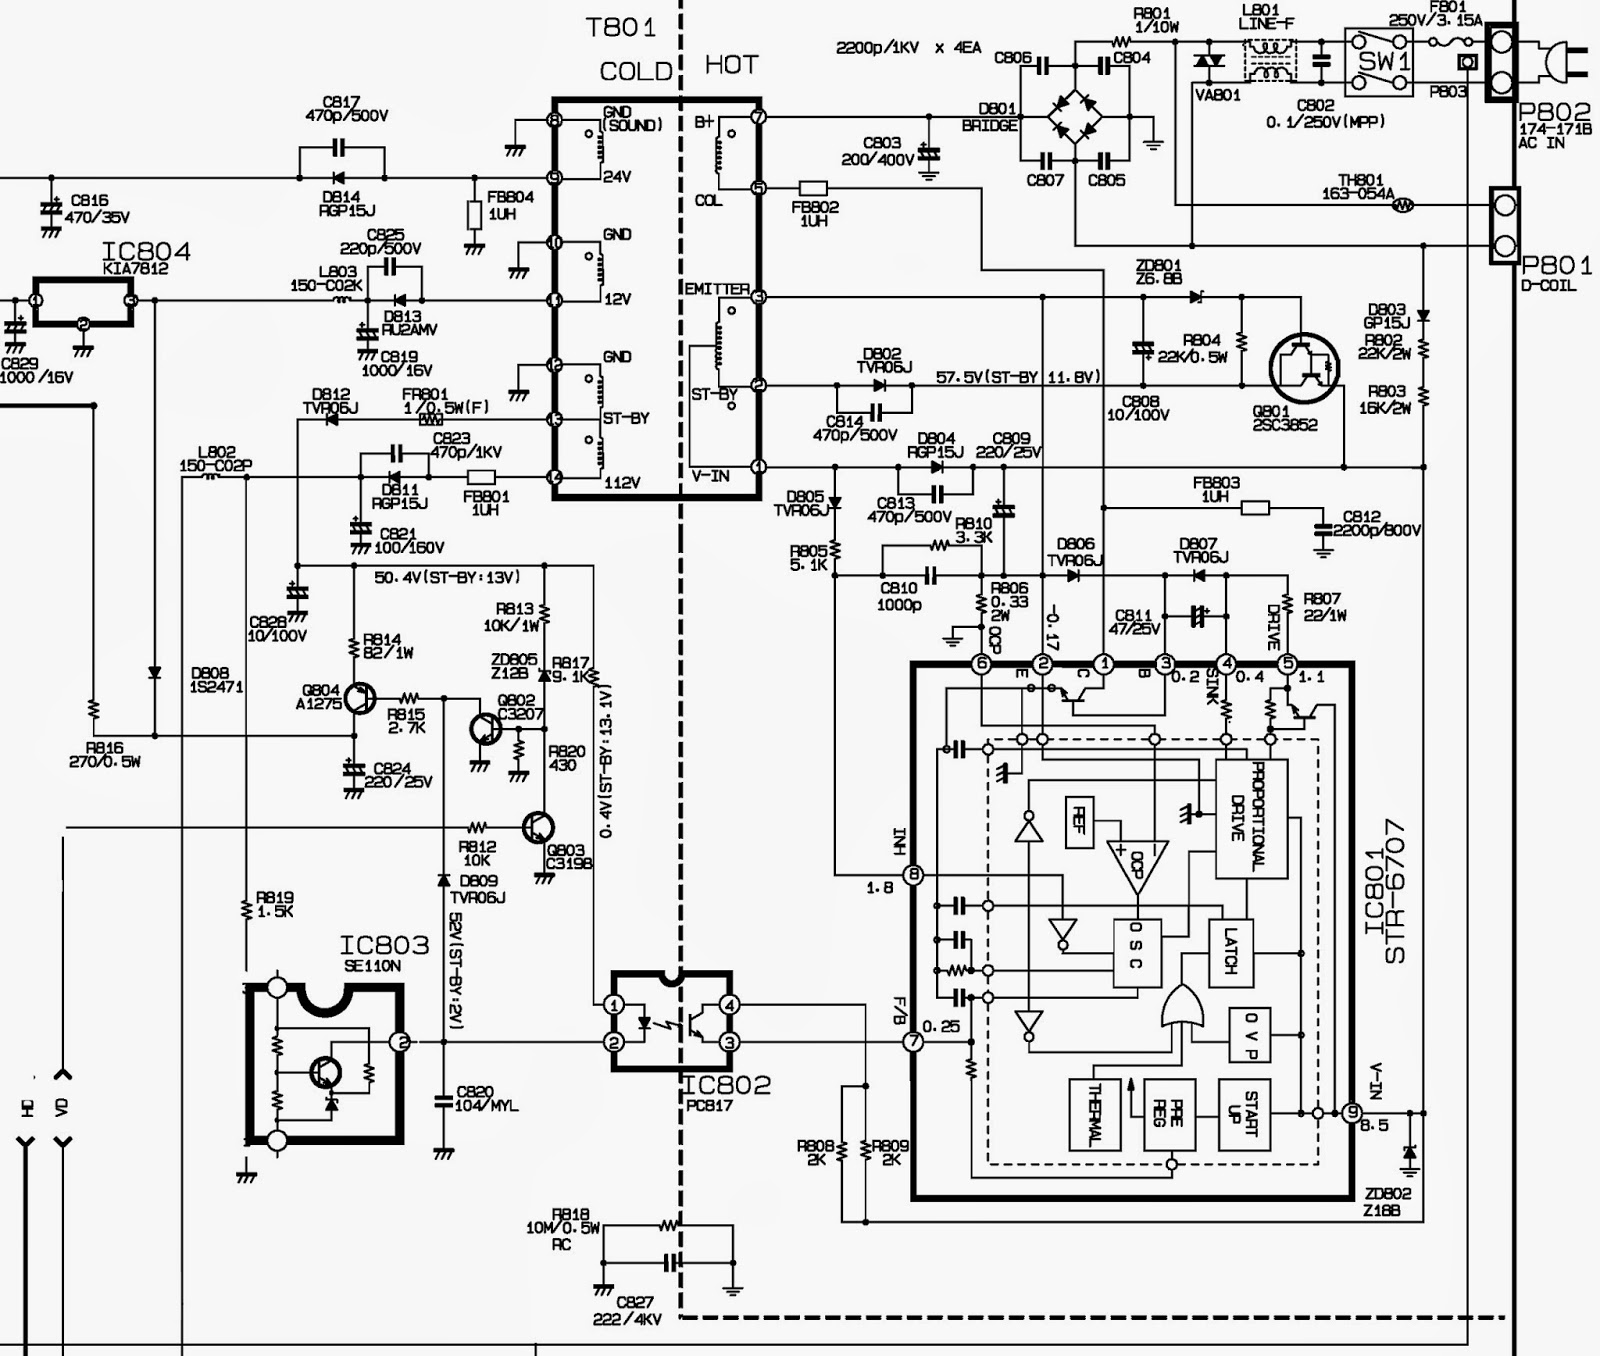 tv smps schematic diagram circuit diagram electro help wiring electro help philips 40pfl3606 lcd tv power supply schematic [ 1600 x 1356 Pixel ]